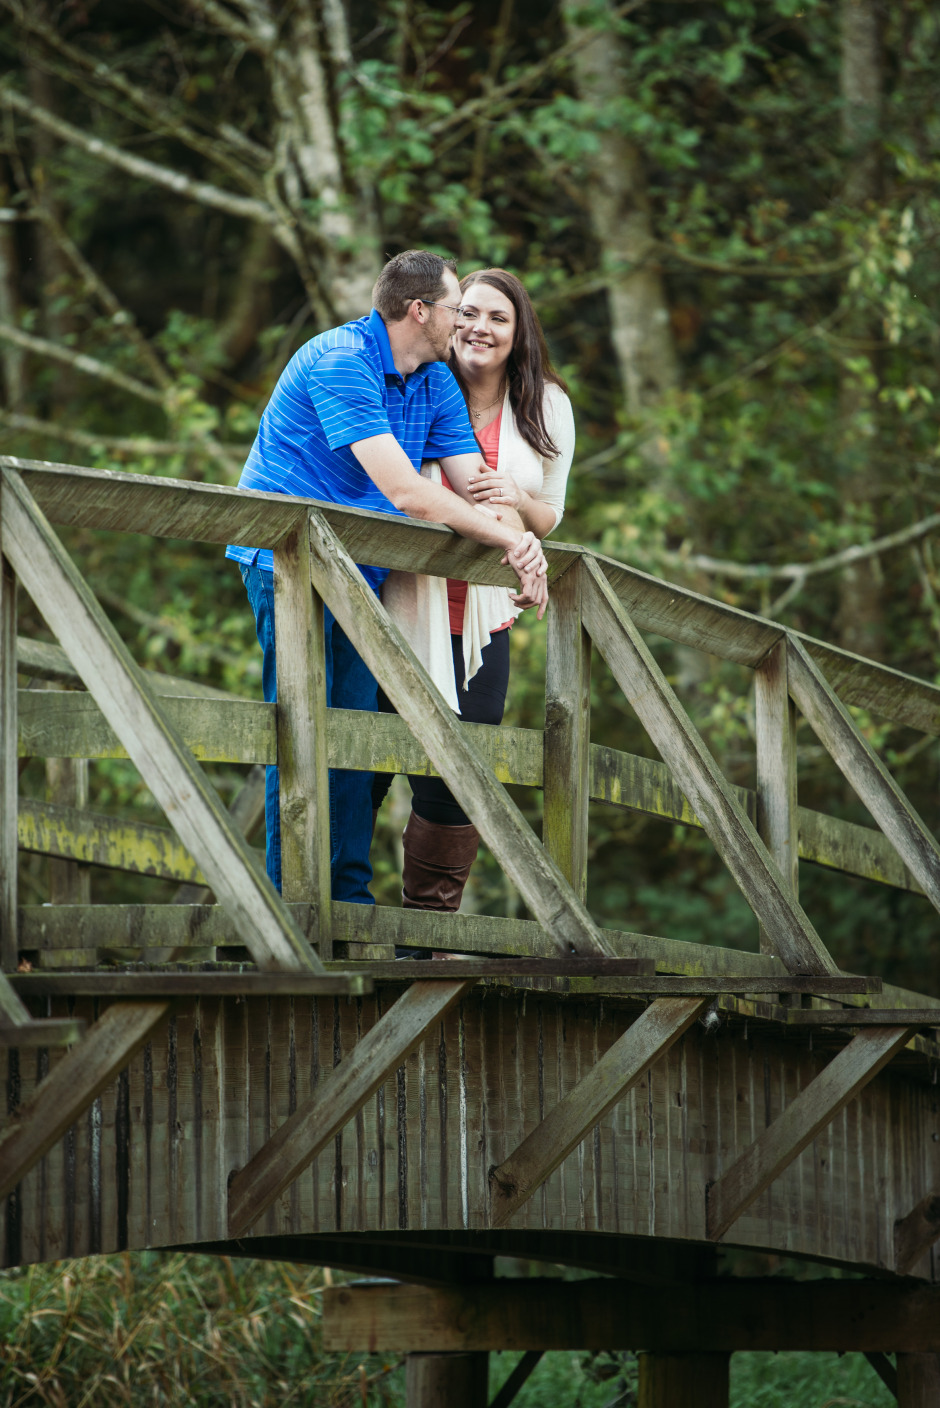 bc-wedding-photographers-campbell-valley-park-engagement-10.jpg